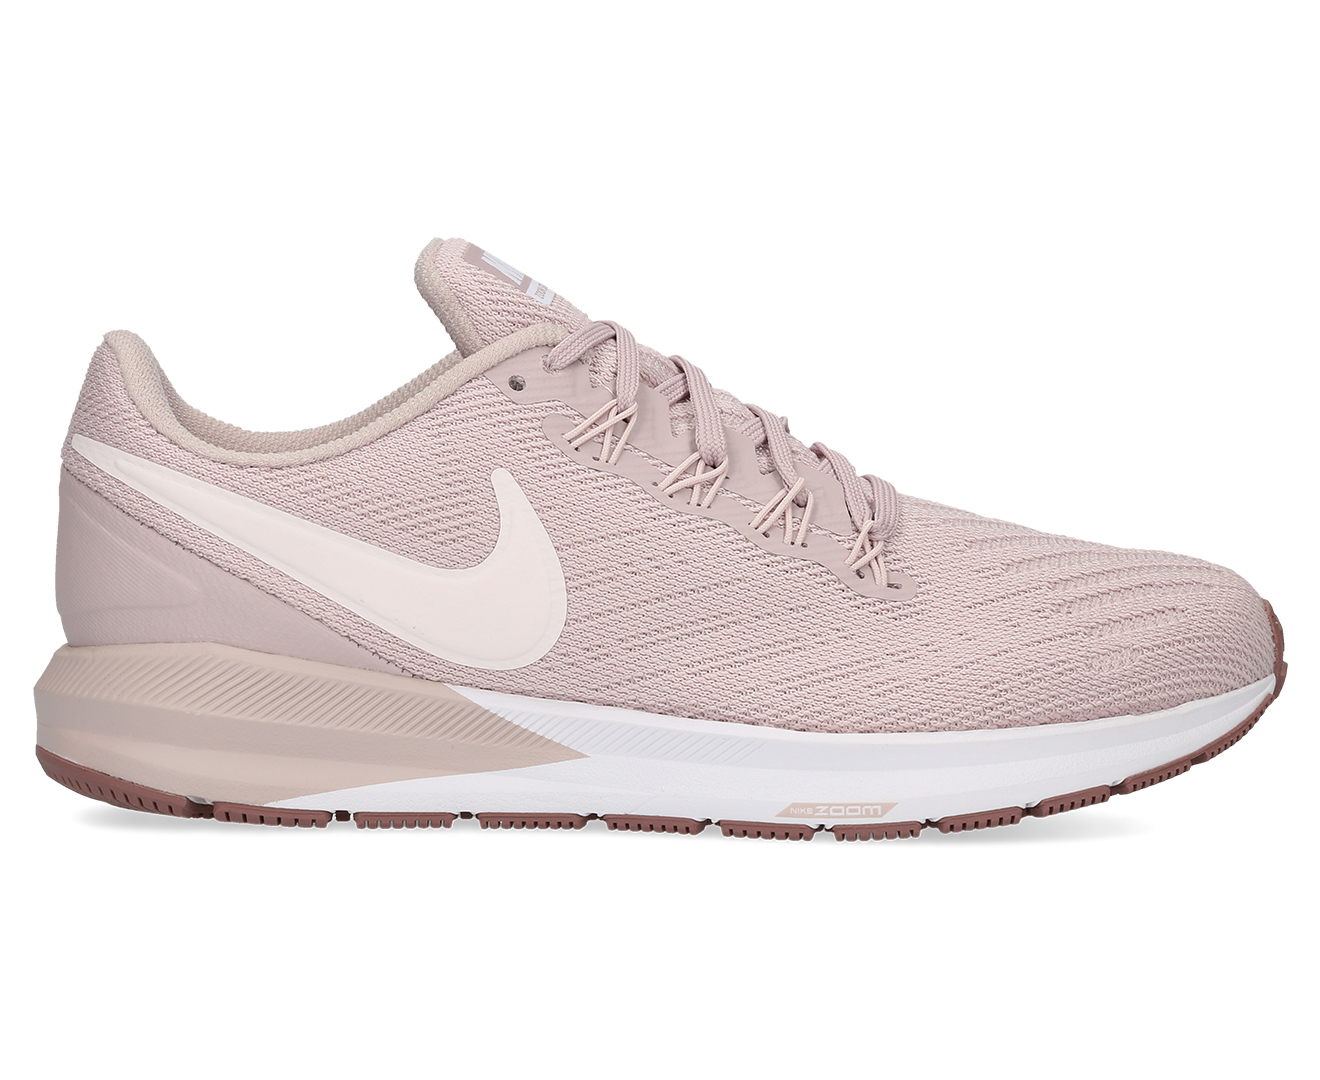 sports shoes 0ac24 870f9 Nike Womens Air Zoom Structure 22 Shoe - Particle RosePale Pink